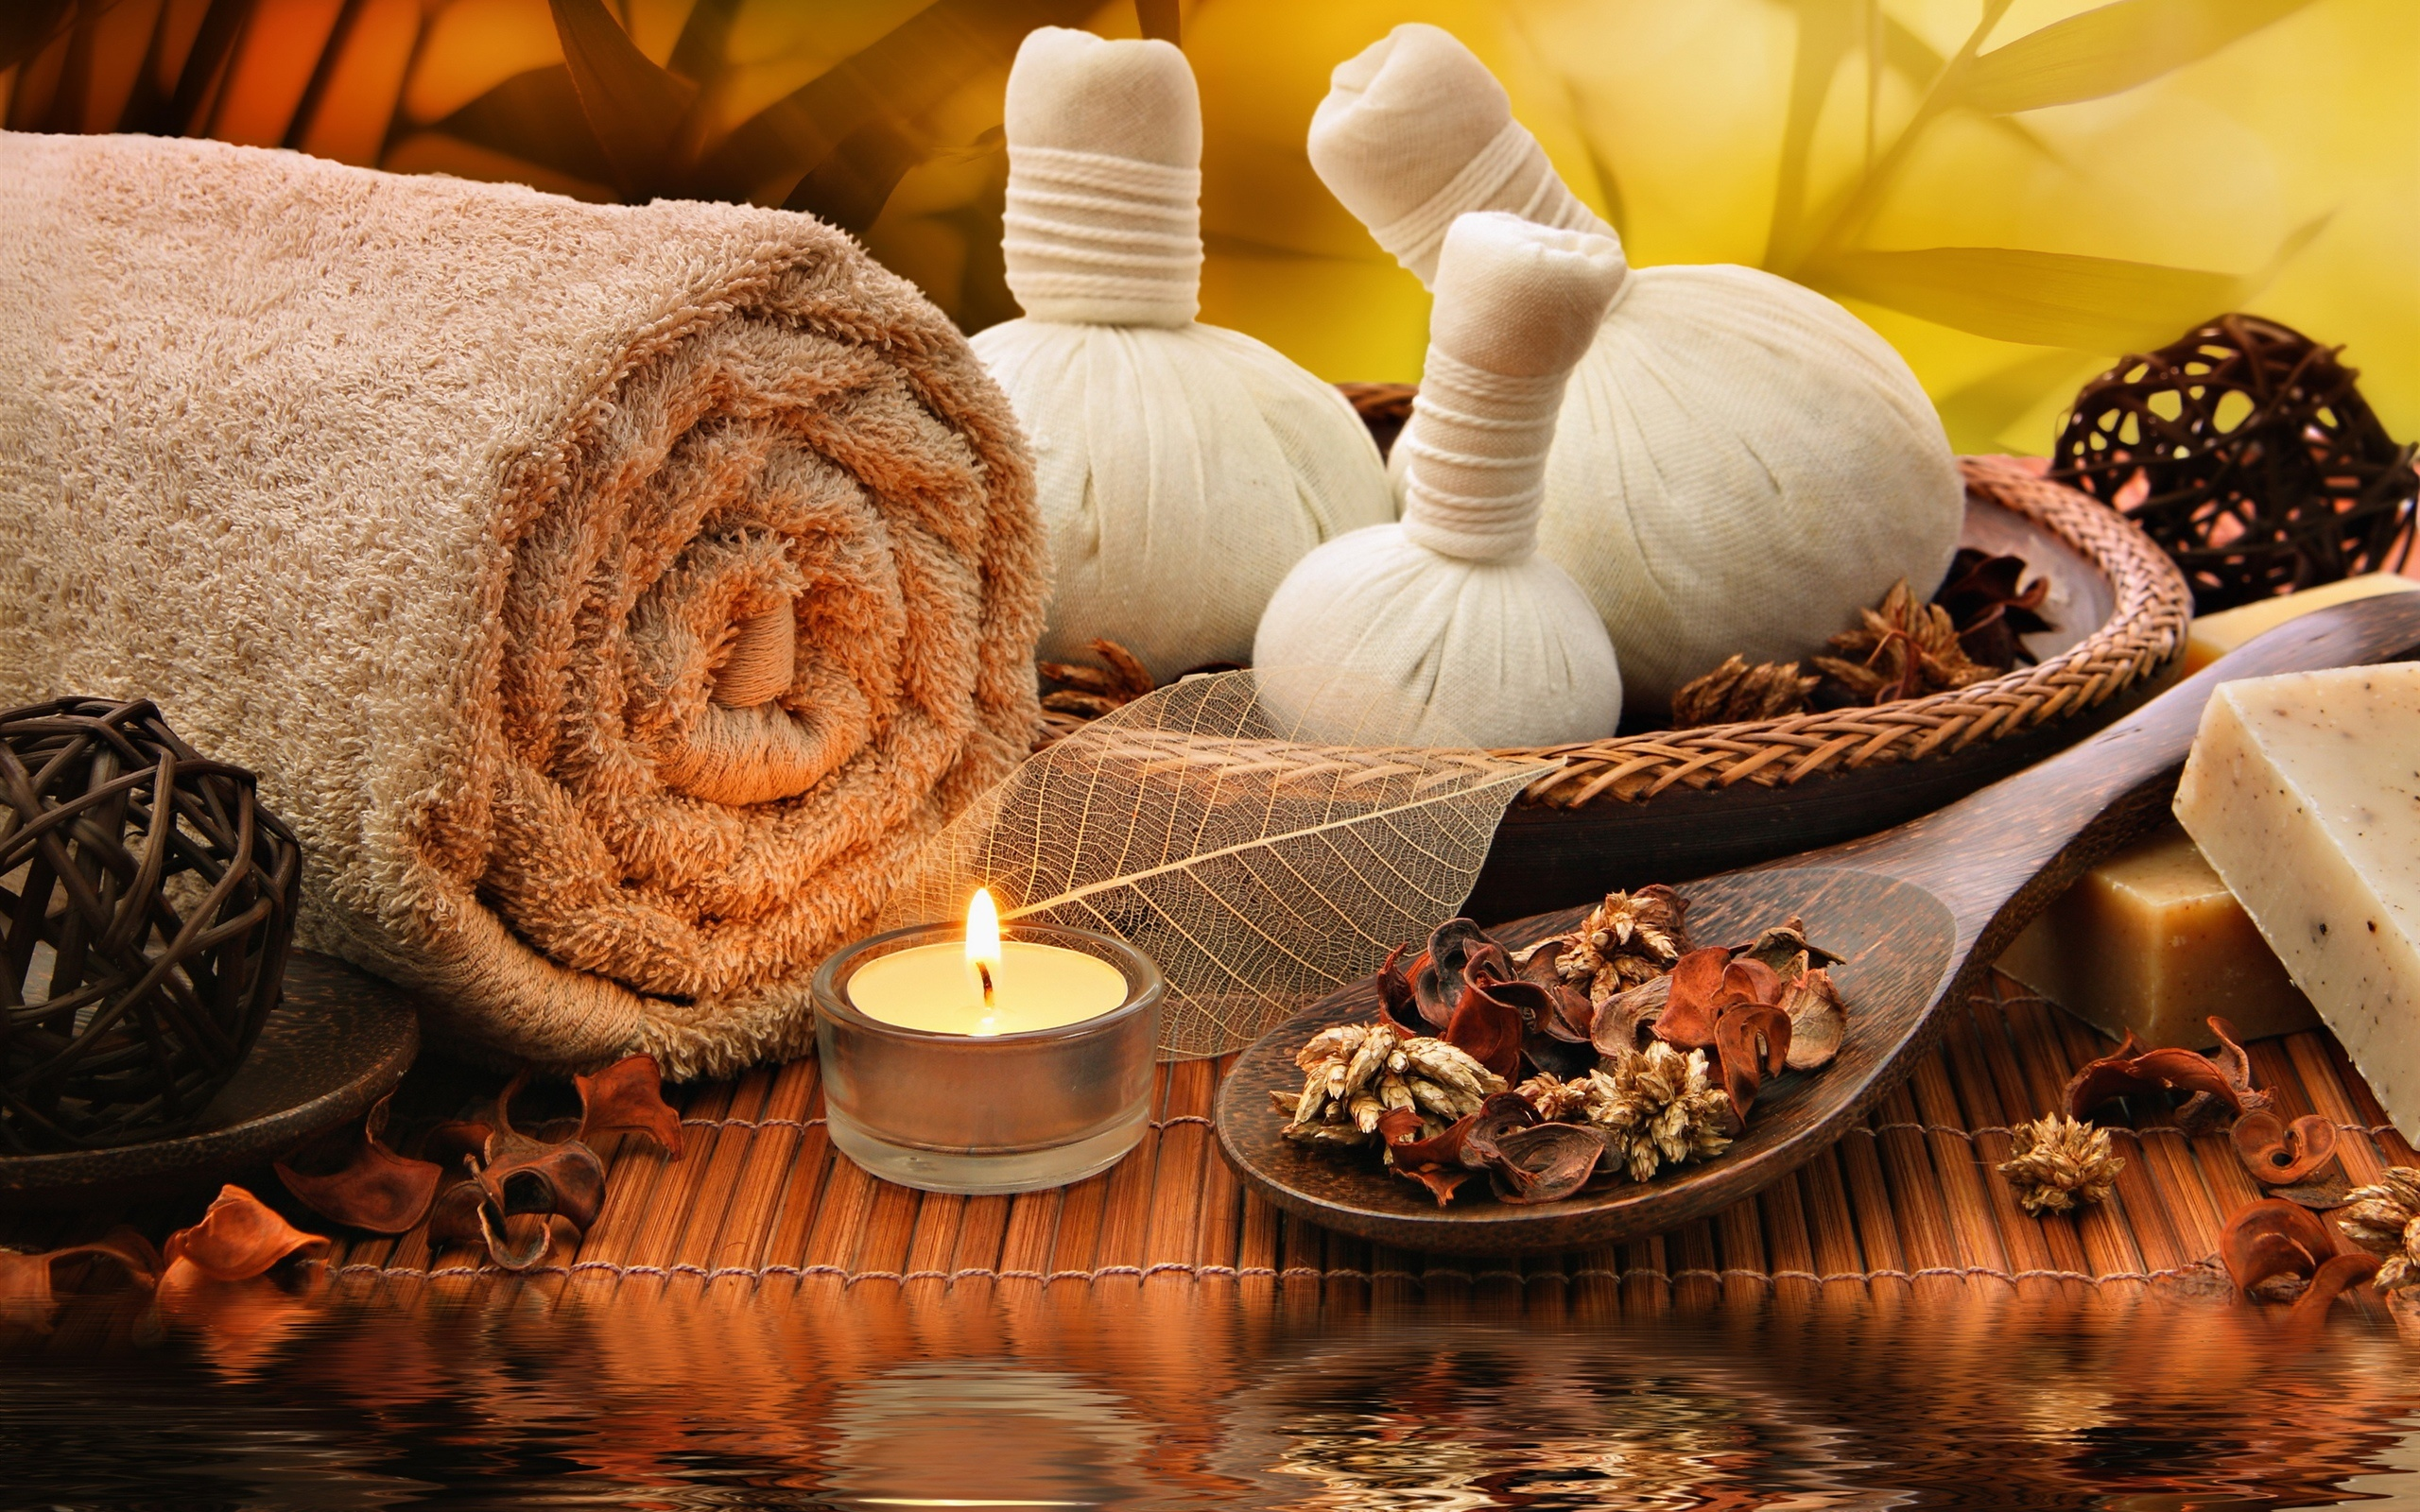 Towel, candle, salt, SPA 2560x1600 wallpaper